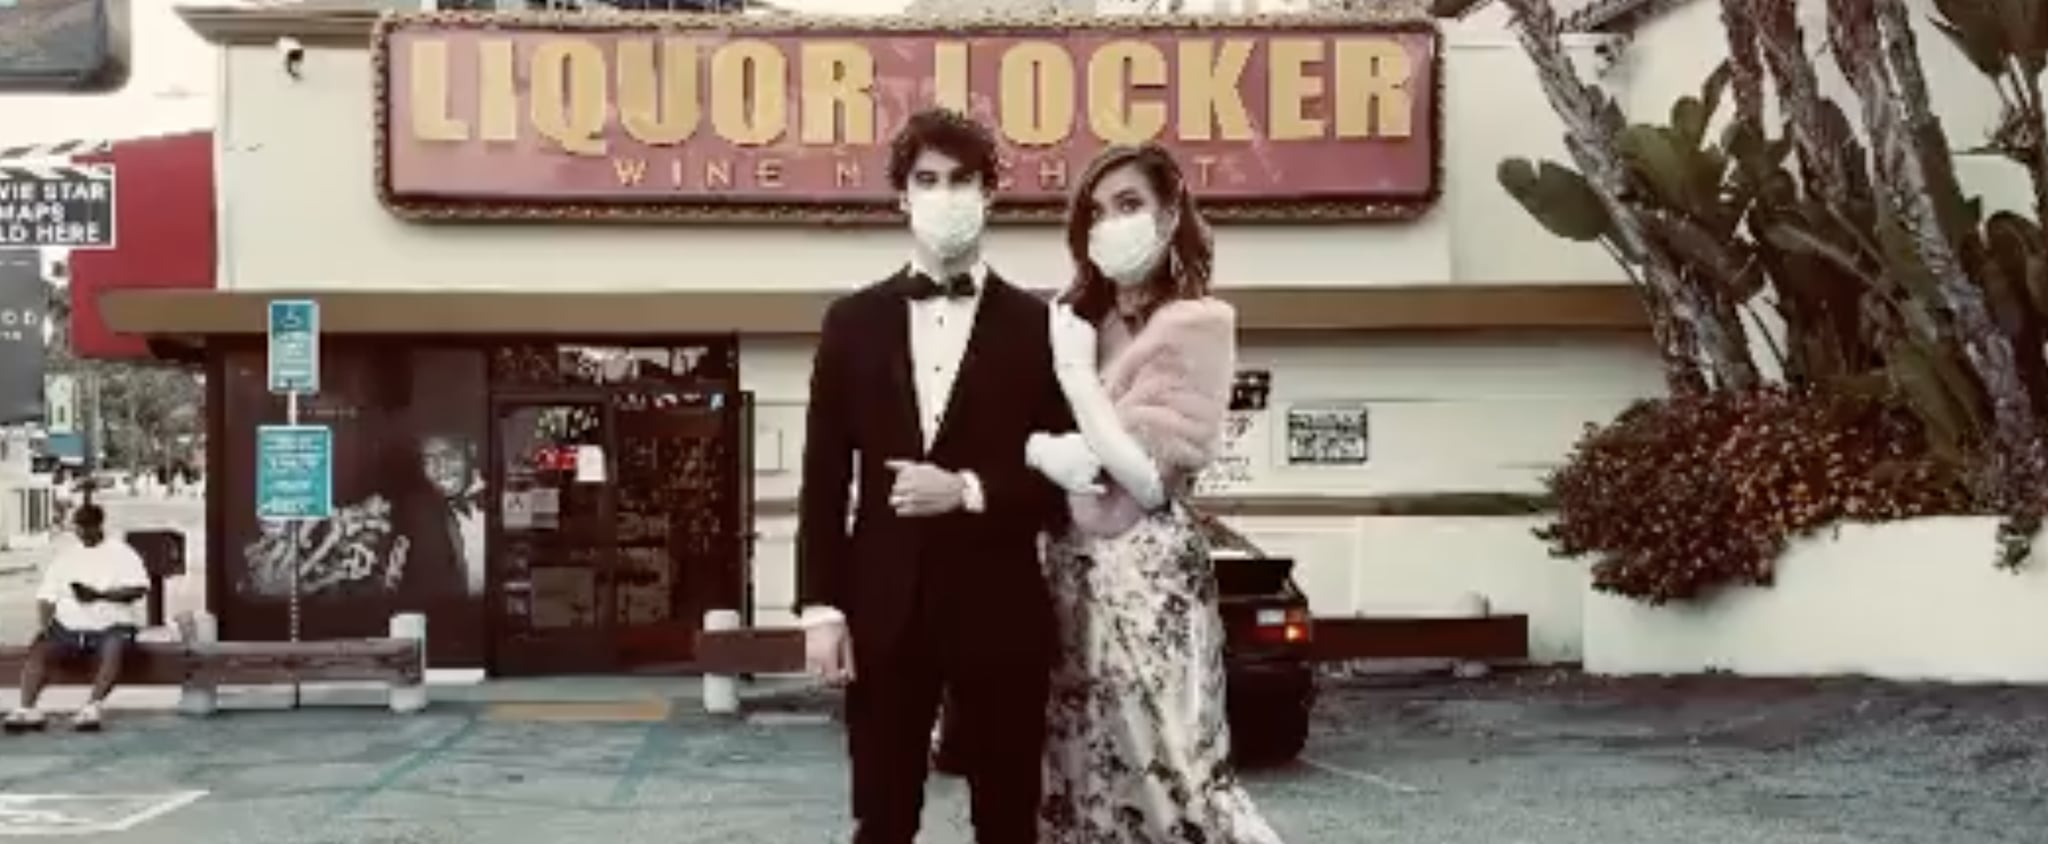 Darren Criss and Mia Swier Have Their Own Hollywood Premiere